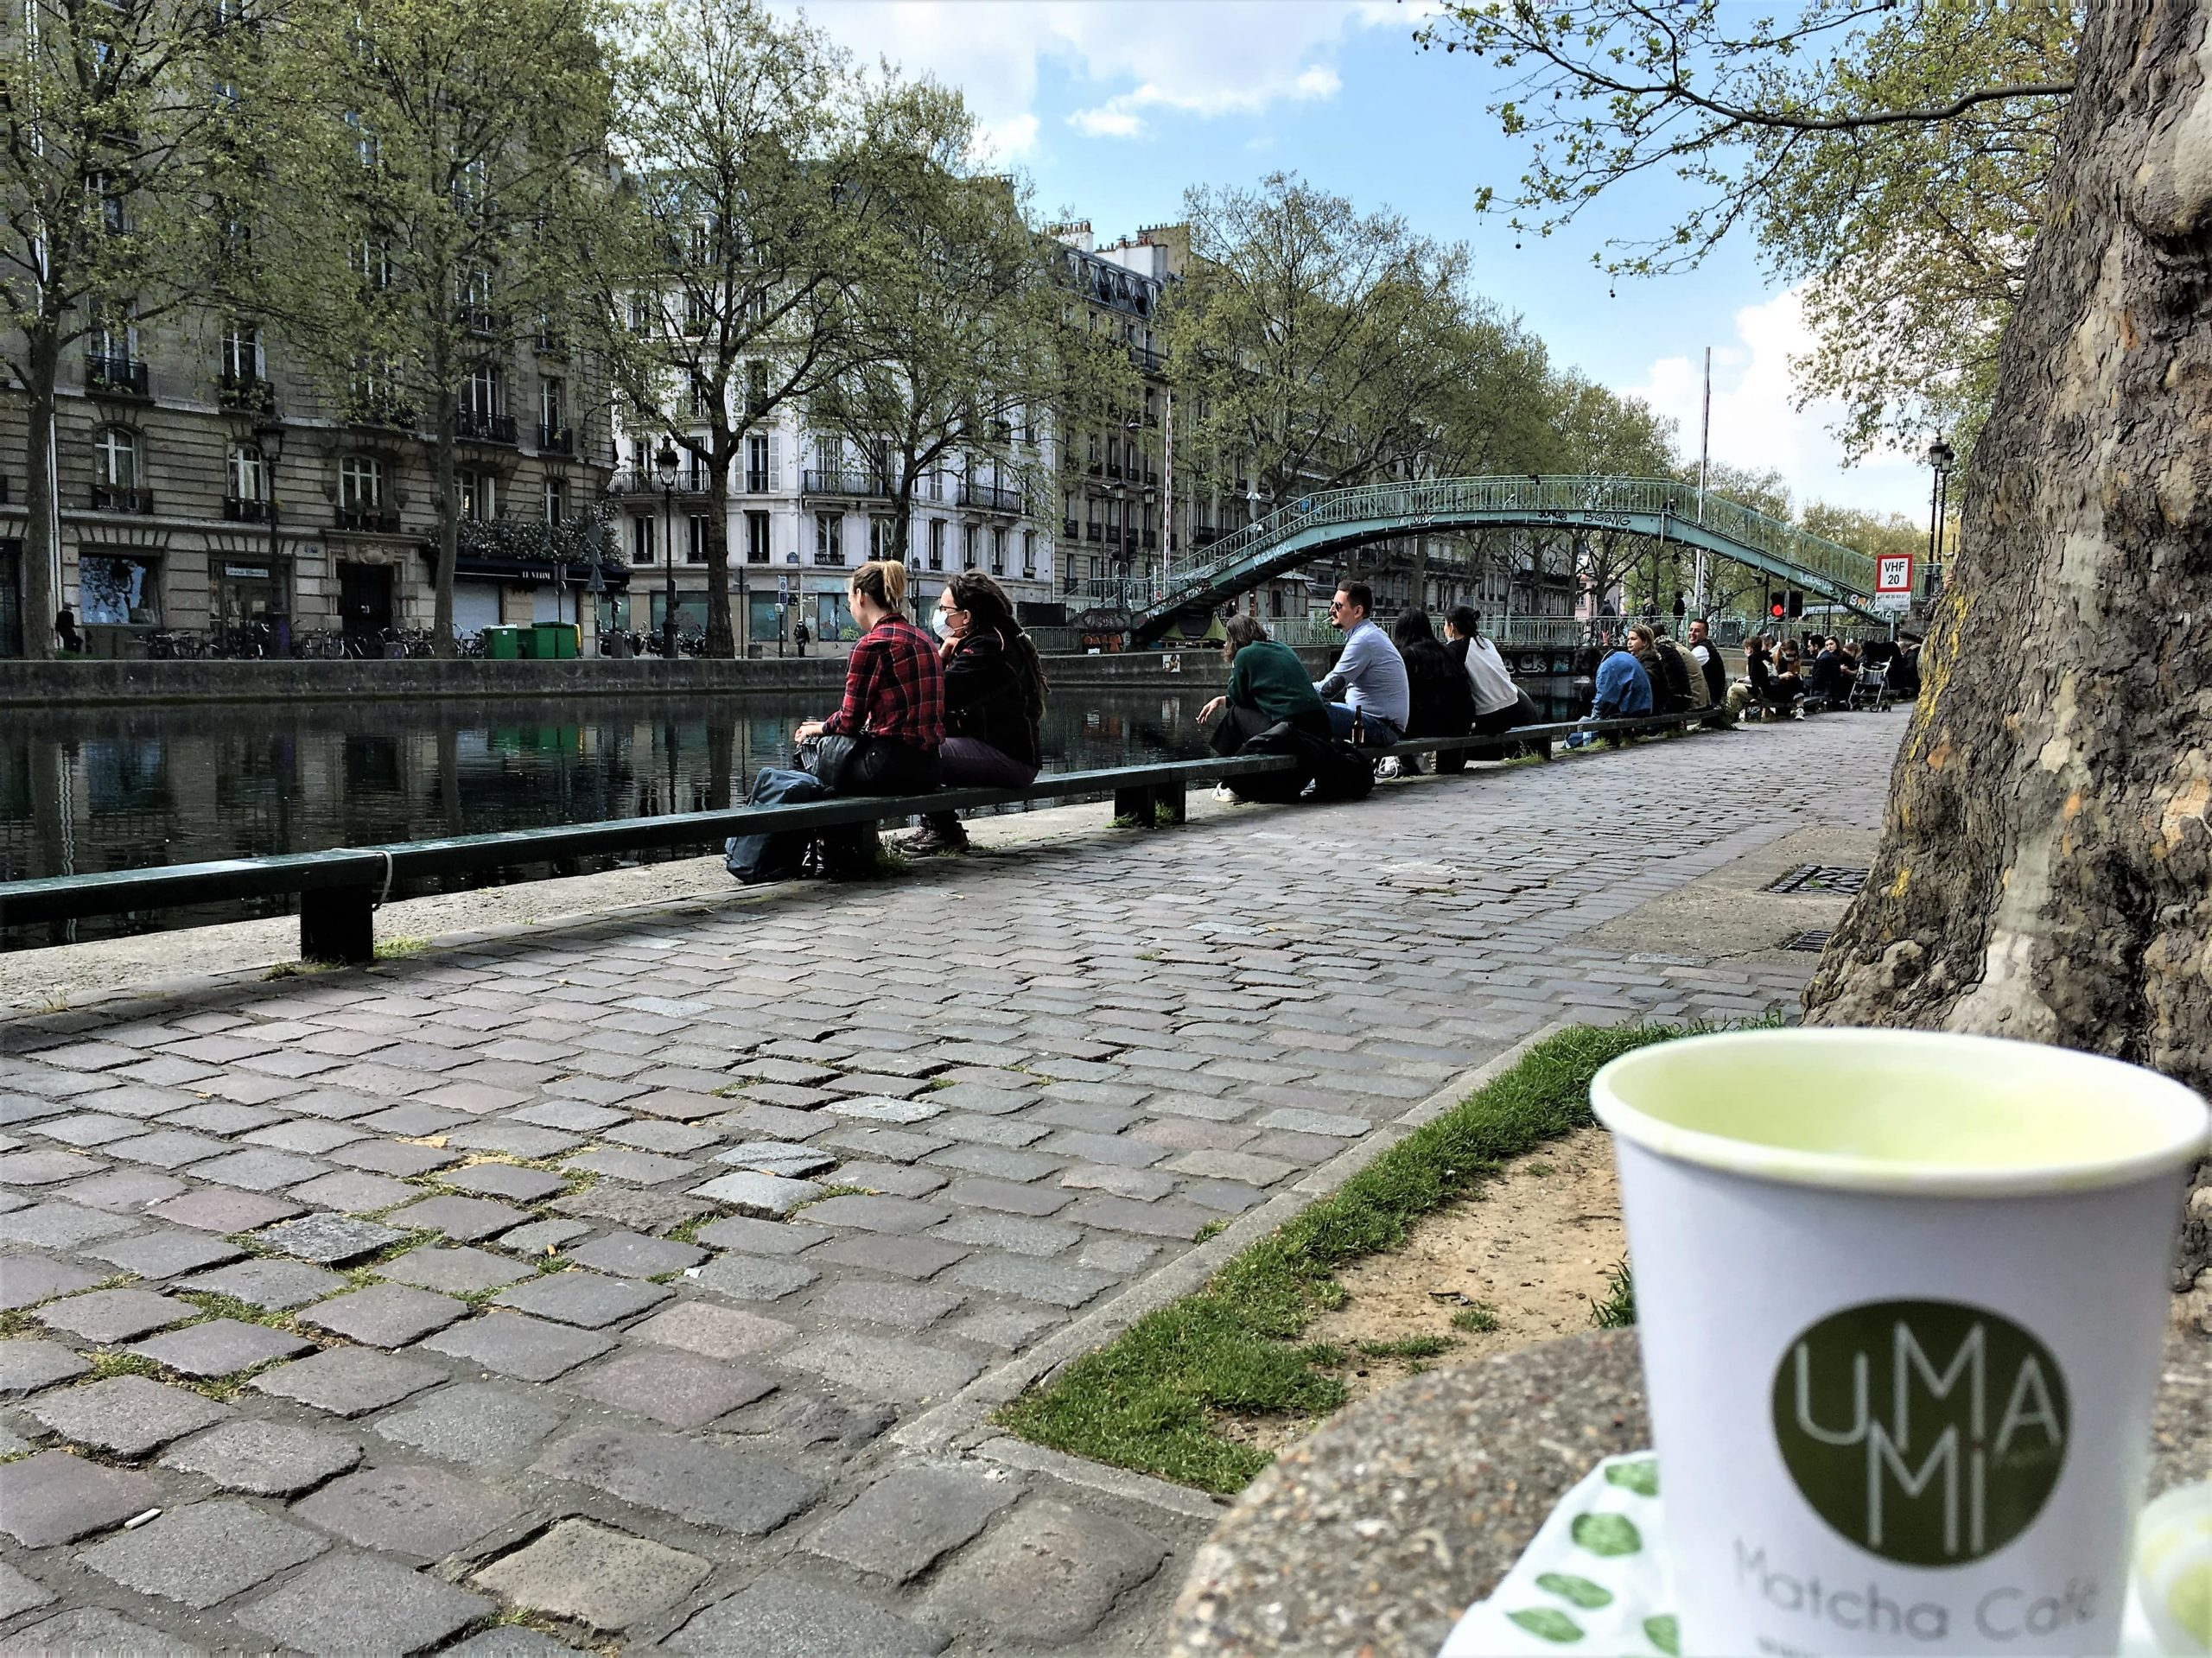 Umami_Matcha_Cafe_Republique_Paris_TeaVoyages